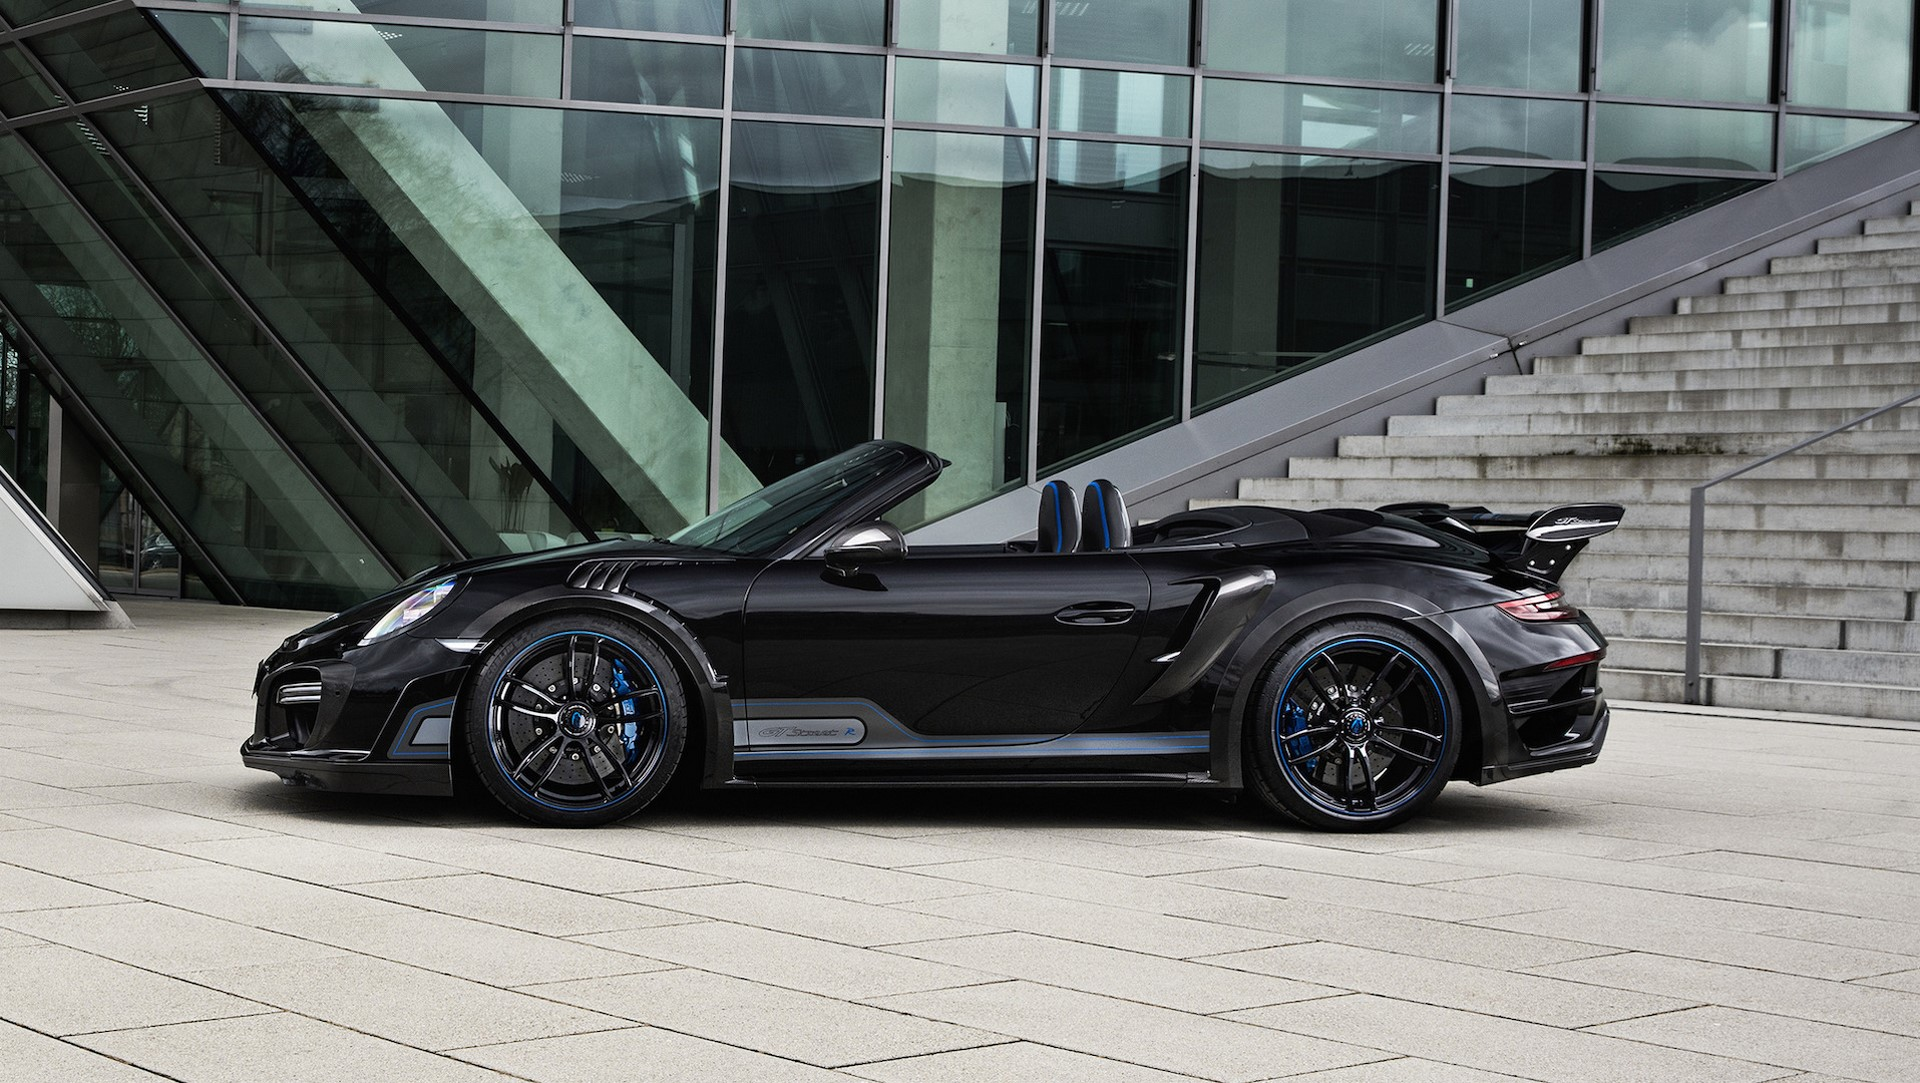 Porshce 911 Turbo Cabriolet by Techart (2)